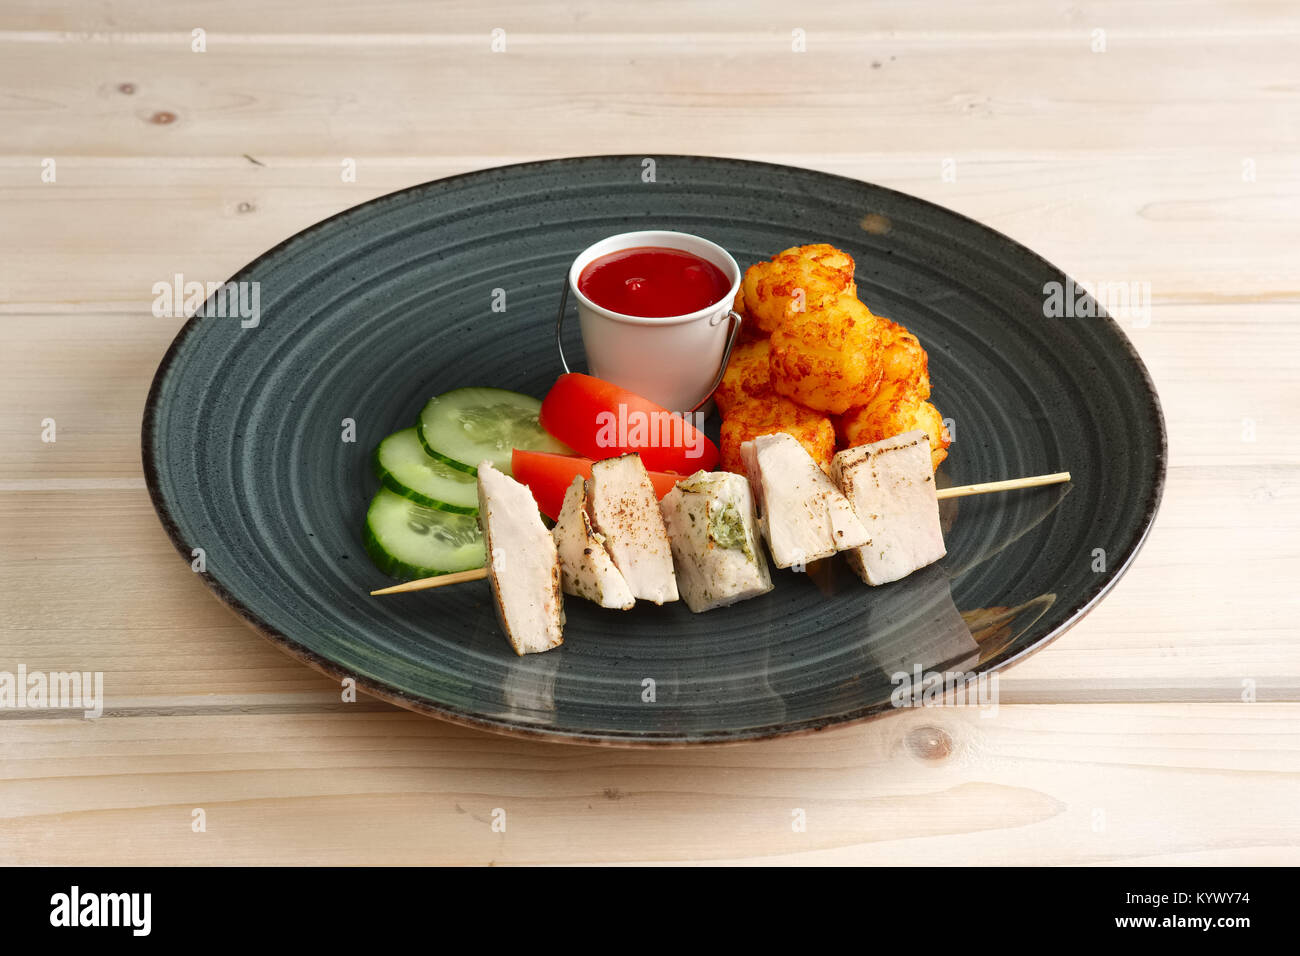 Pieces of chicken fillet on skewer with fried potato balls and vegetables - Stock Image